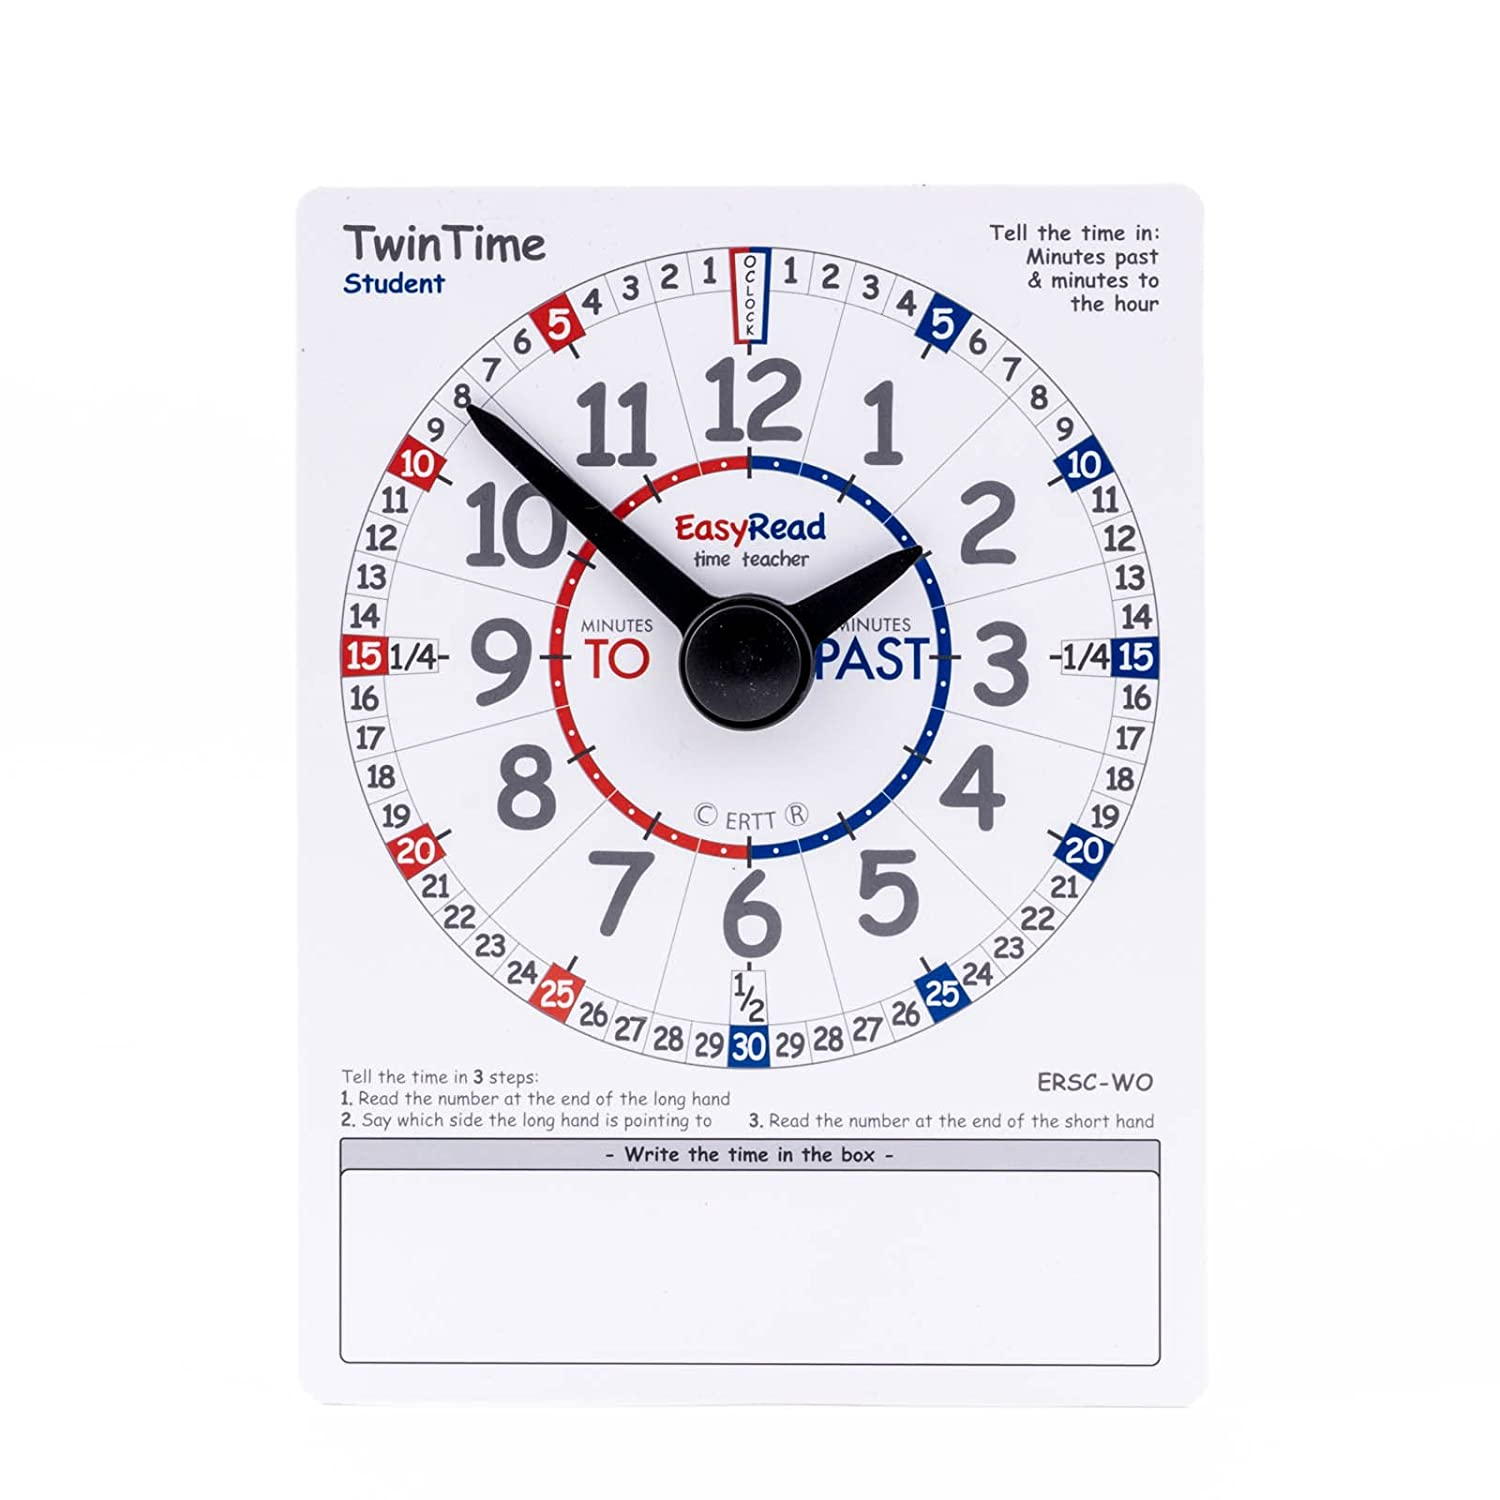 6 x 8 double-sided write on wipe off clock card EasyRead TwinTime Student Edition